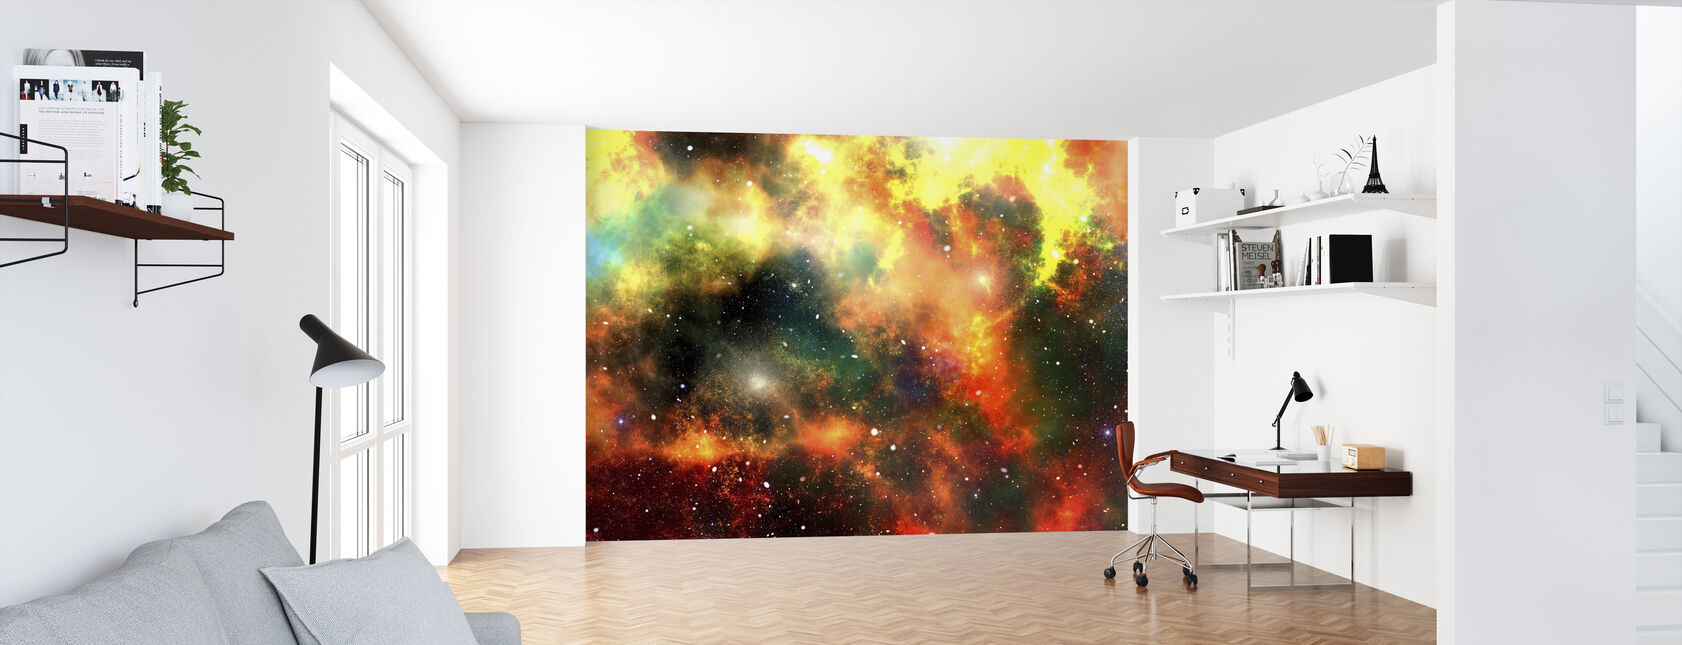 Outer Space - Wallpaper - Office